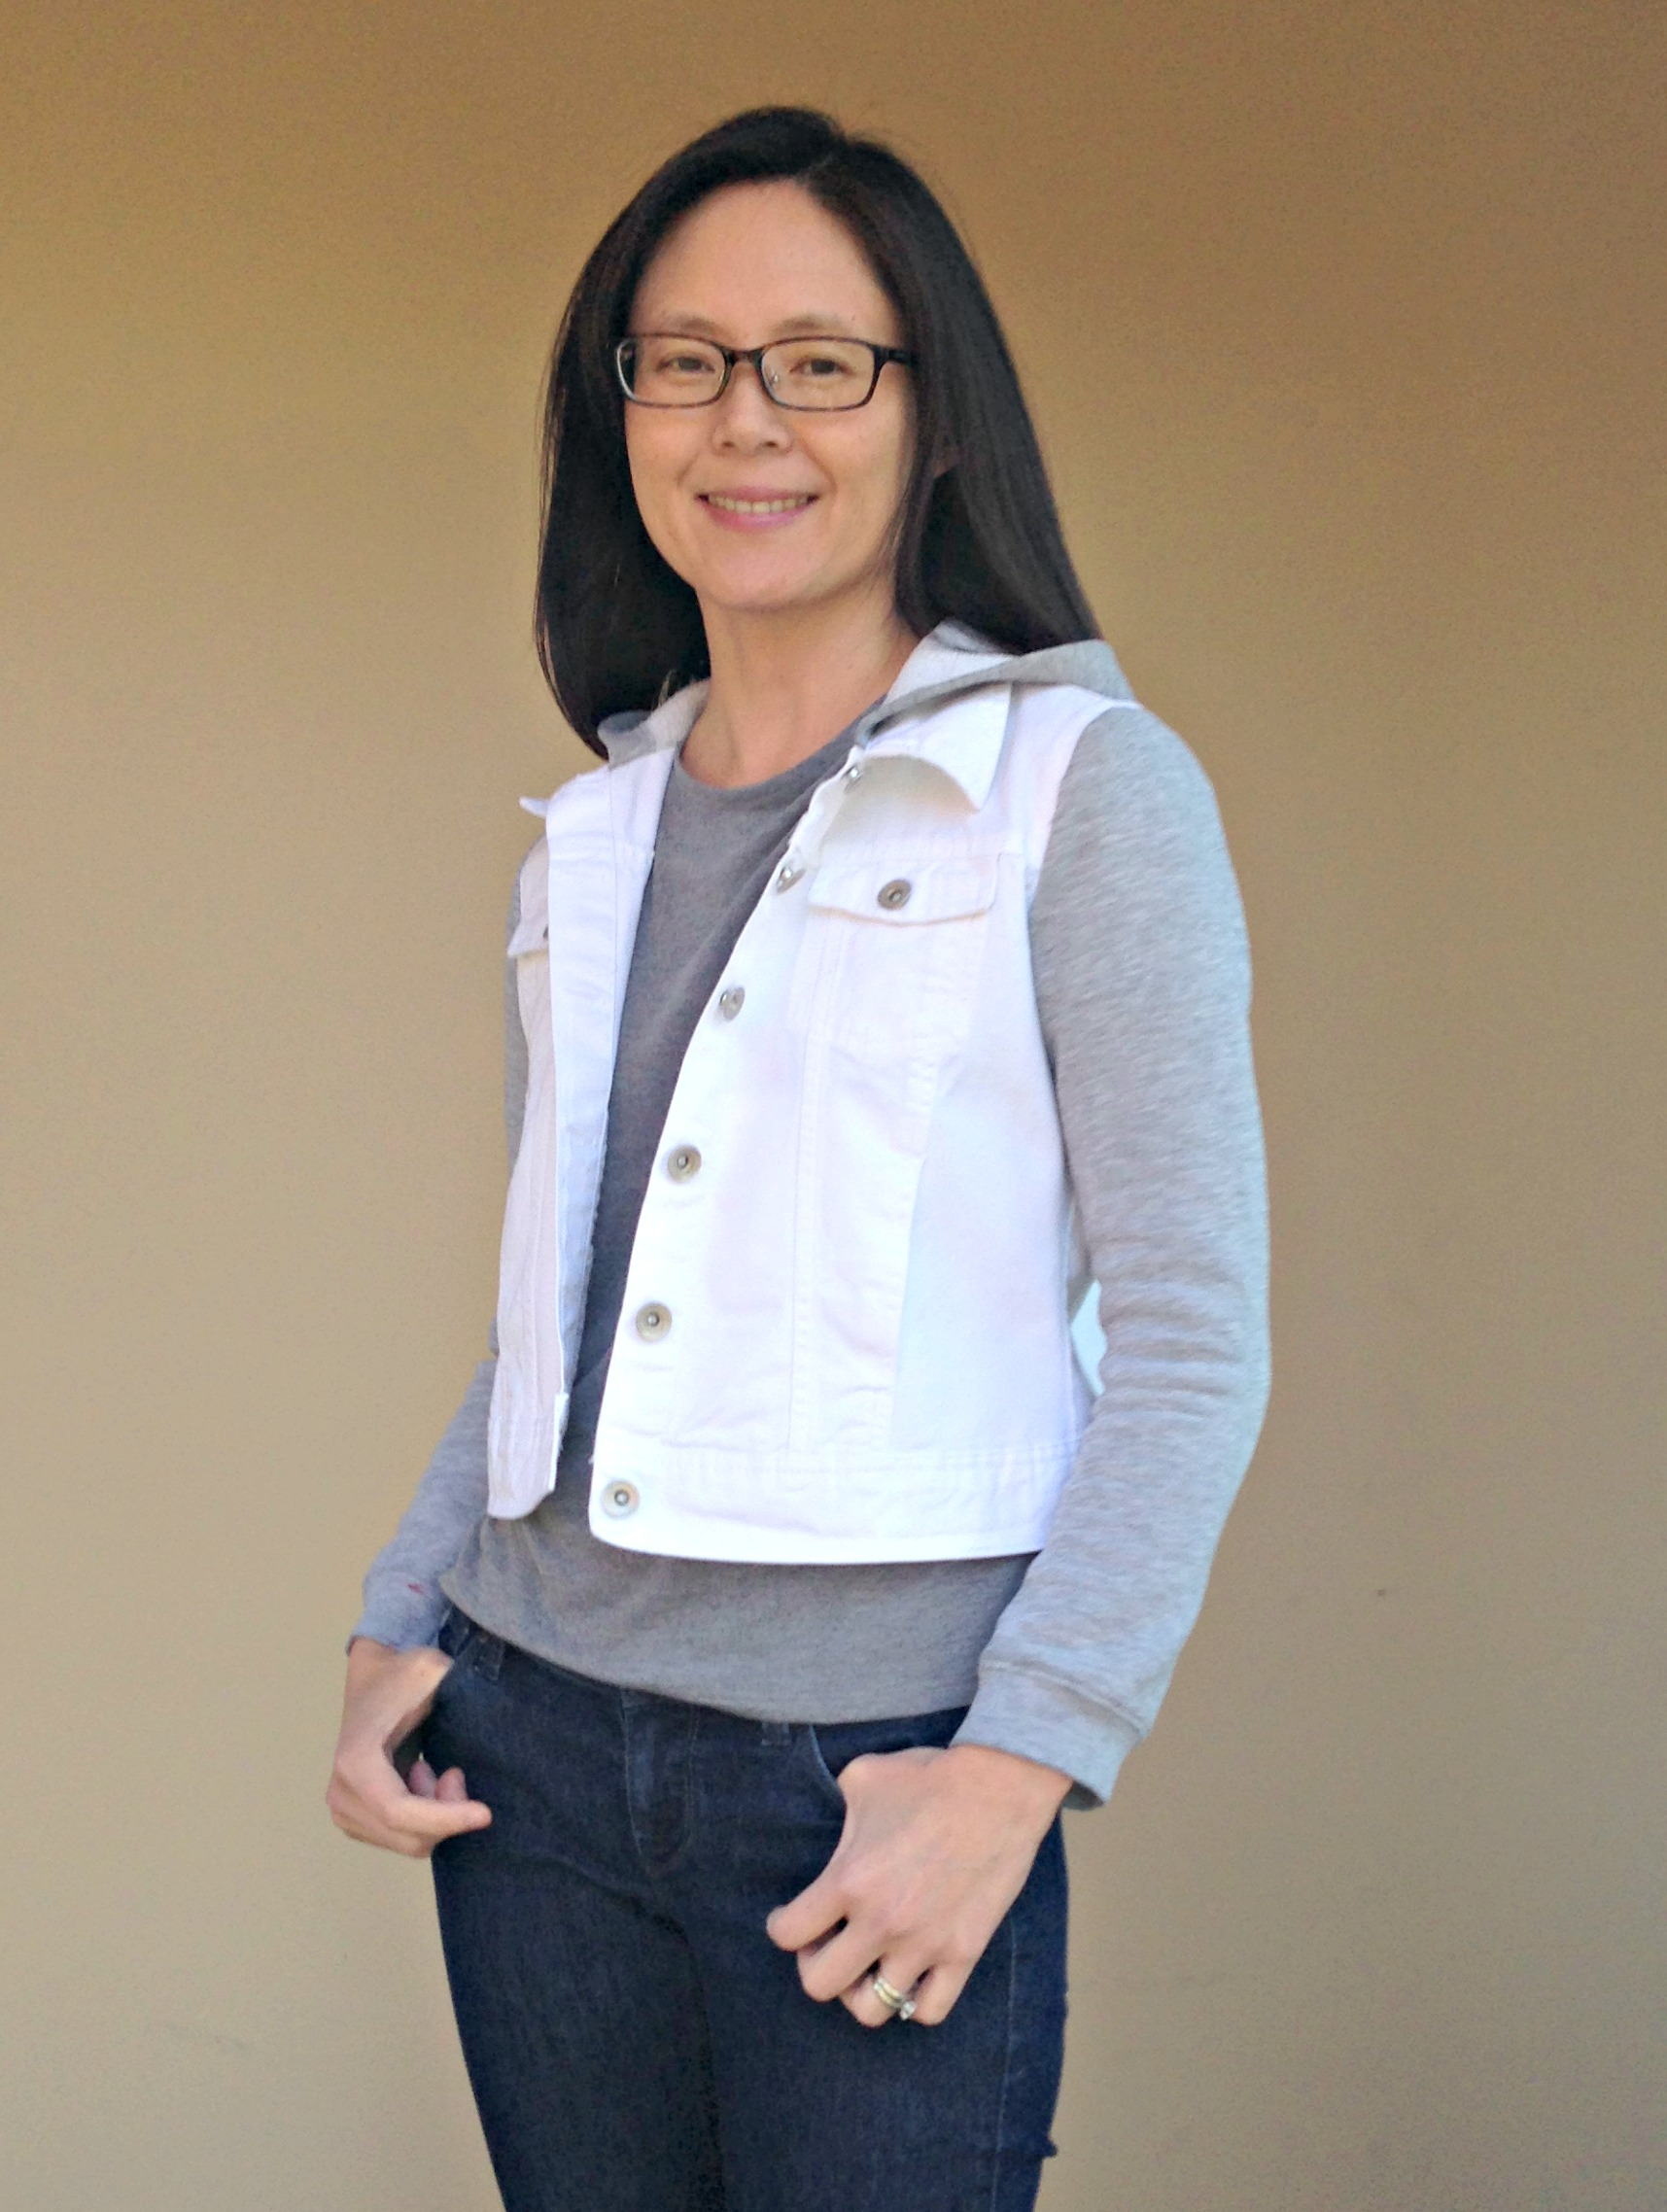 Refashioned Jean Jacket with Sweatshirt Sleeves and Hoodie - After Front